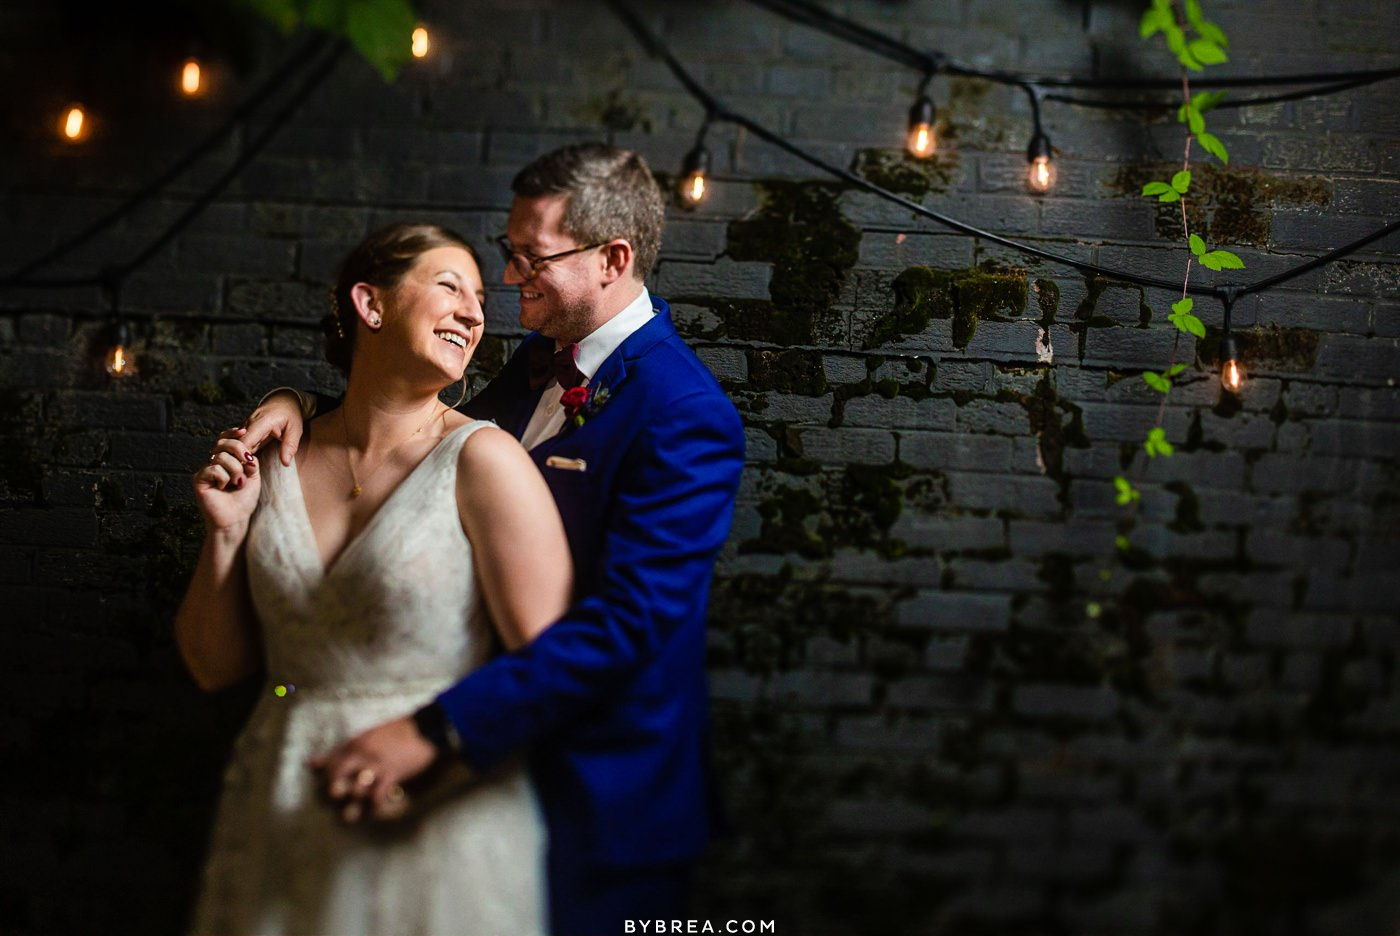 Wedding photo at the Sun Room in DC